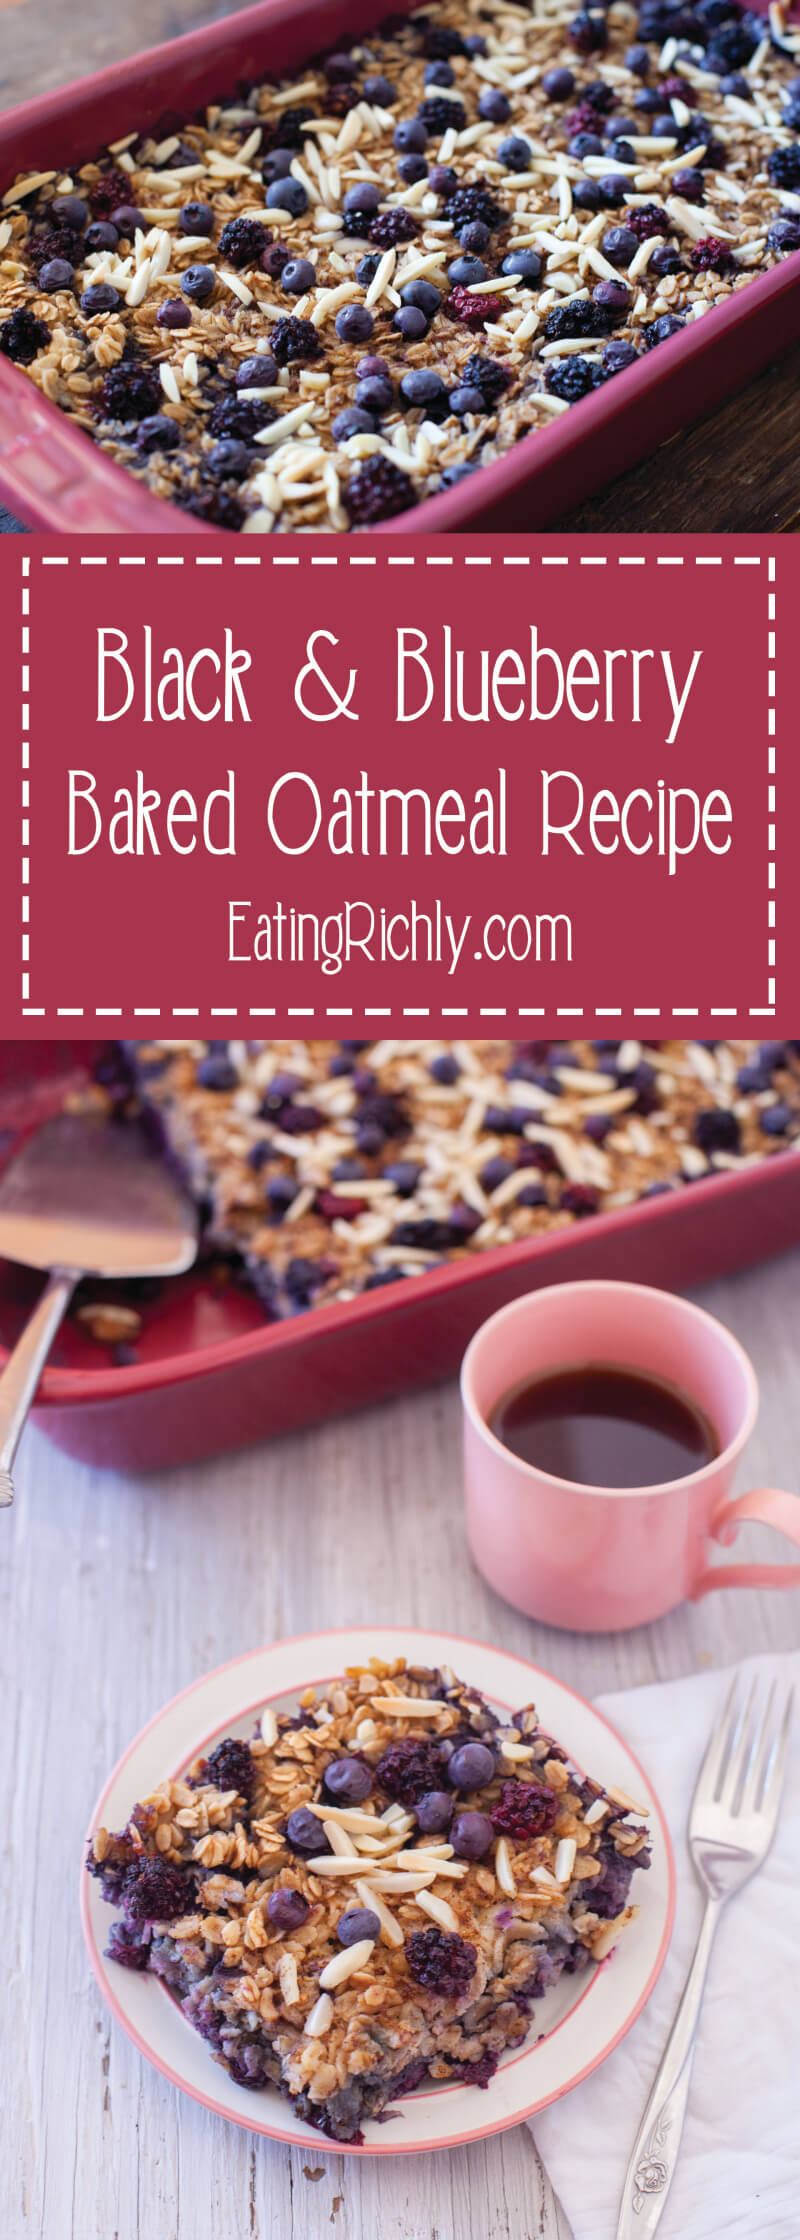 This easy black and blueberry baked oatmeal recipe is a healthy breakfast to make ahead & enjoy throughout the week, or perfect to feed a crowd at brunch. Easy substitutions to make it gluten free, dairy free, nut free, and/or vegan. From EatingRichly.com